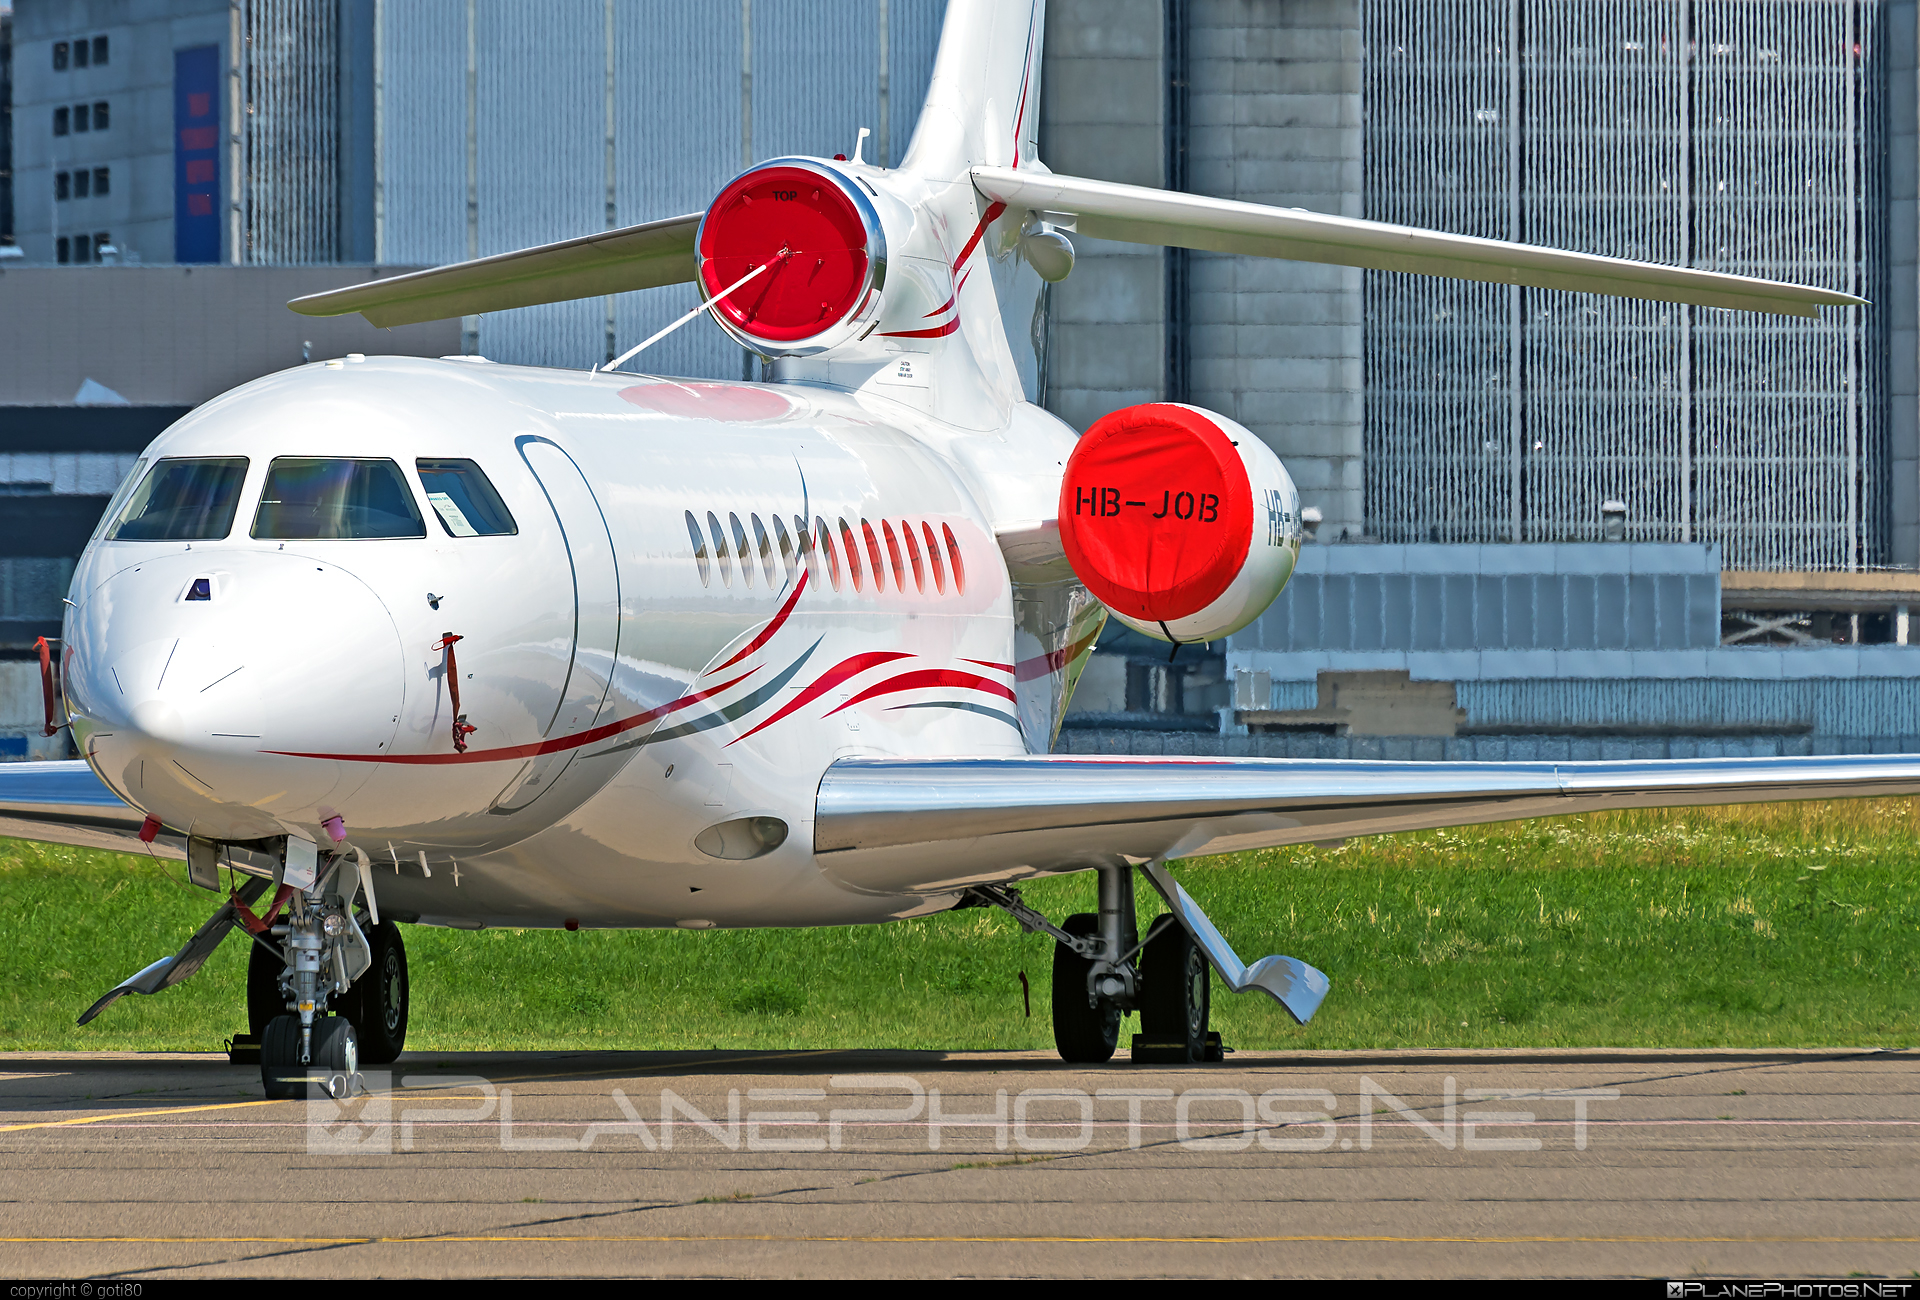 Dassault Falcon 7X - HB-JOB operated by Cat Aviation #dassault #dassaultfalcon #dassaultfalcon7x #falcon7x